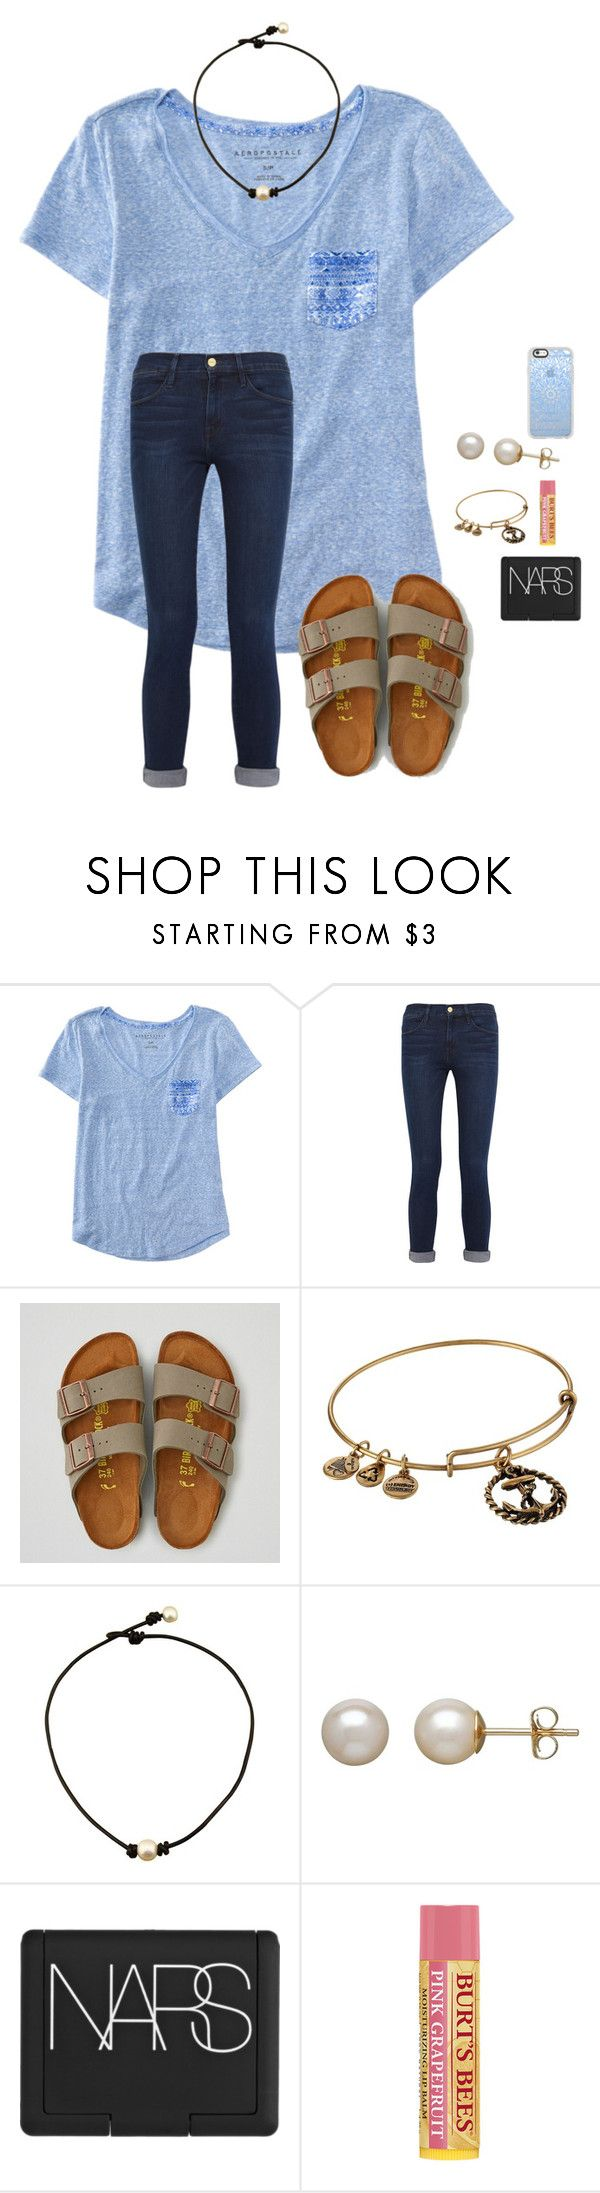 """School starts in a week from today"" by xclover5 ❤ liked on Polyvore featuring Aéropostale, Frame, American Eagle Outfitters, Alex and Ani, Honora, NARS Cosmetics and Casetify"